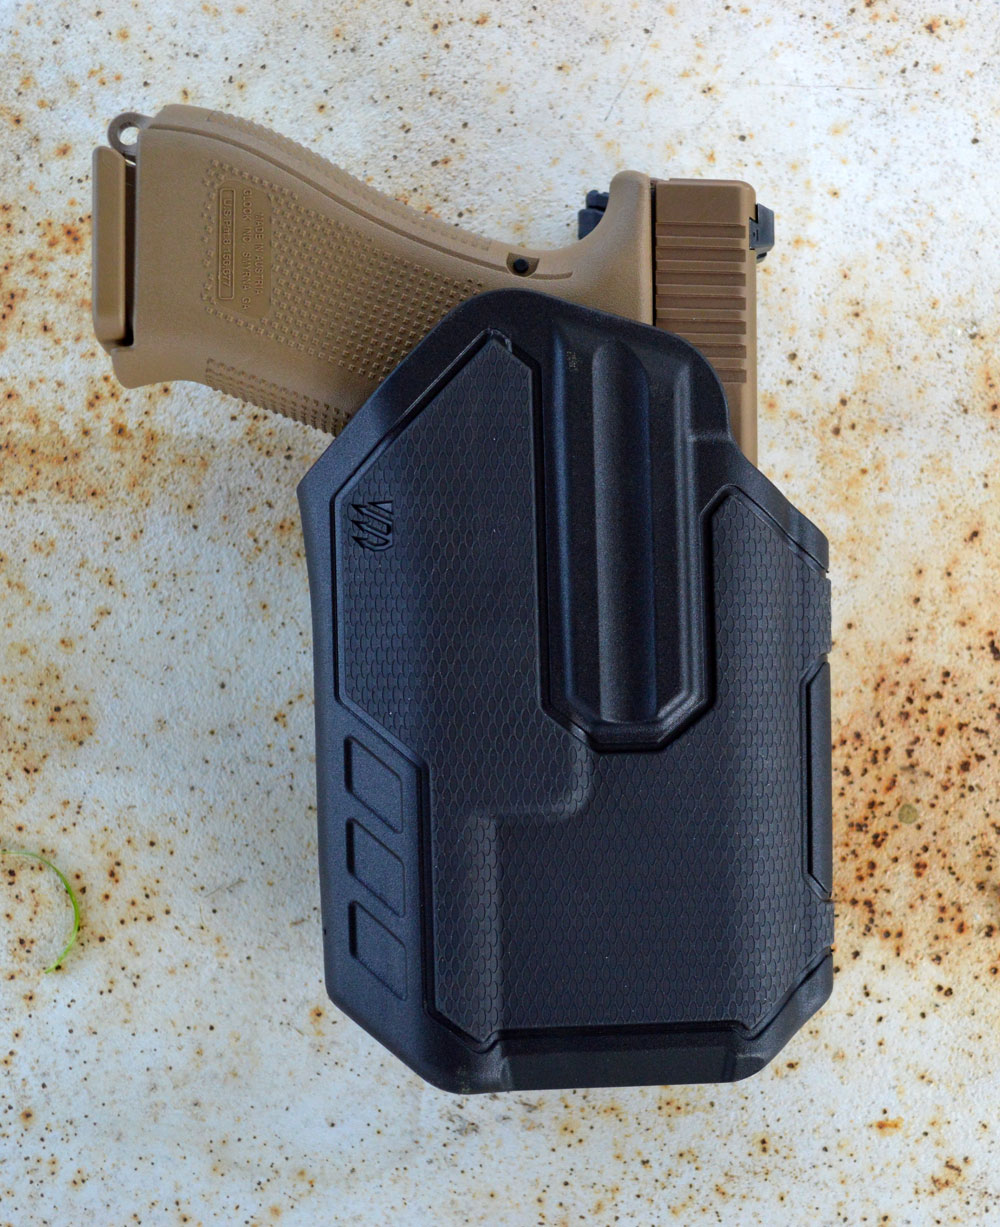 Blackhawk! Omnivore holster with Glock 19x